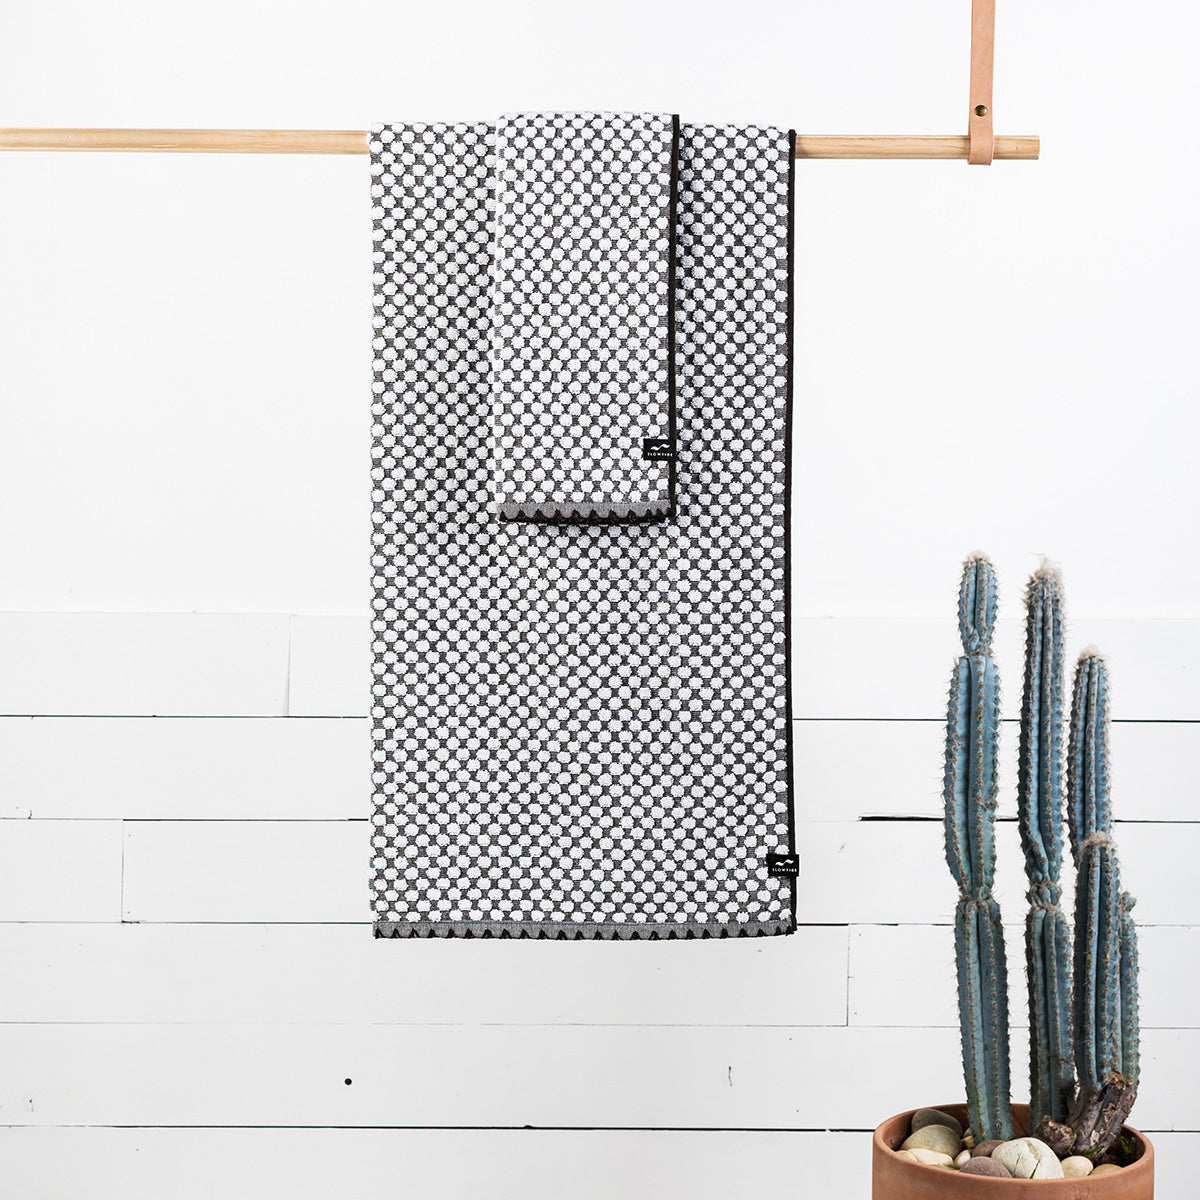 Clive Hand Towel - Stone - Slowtide